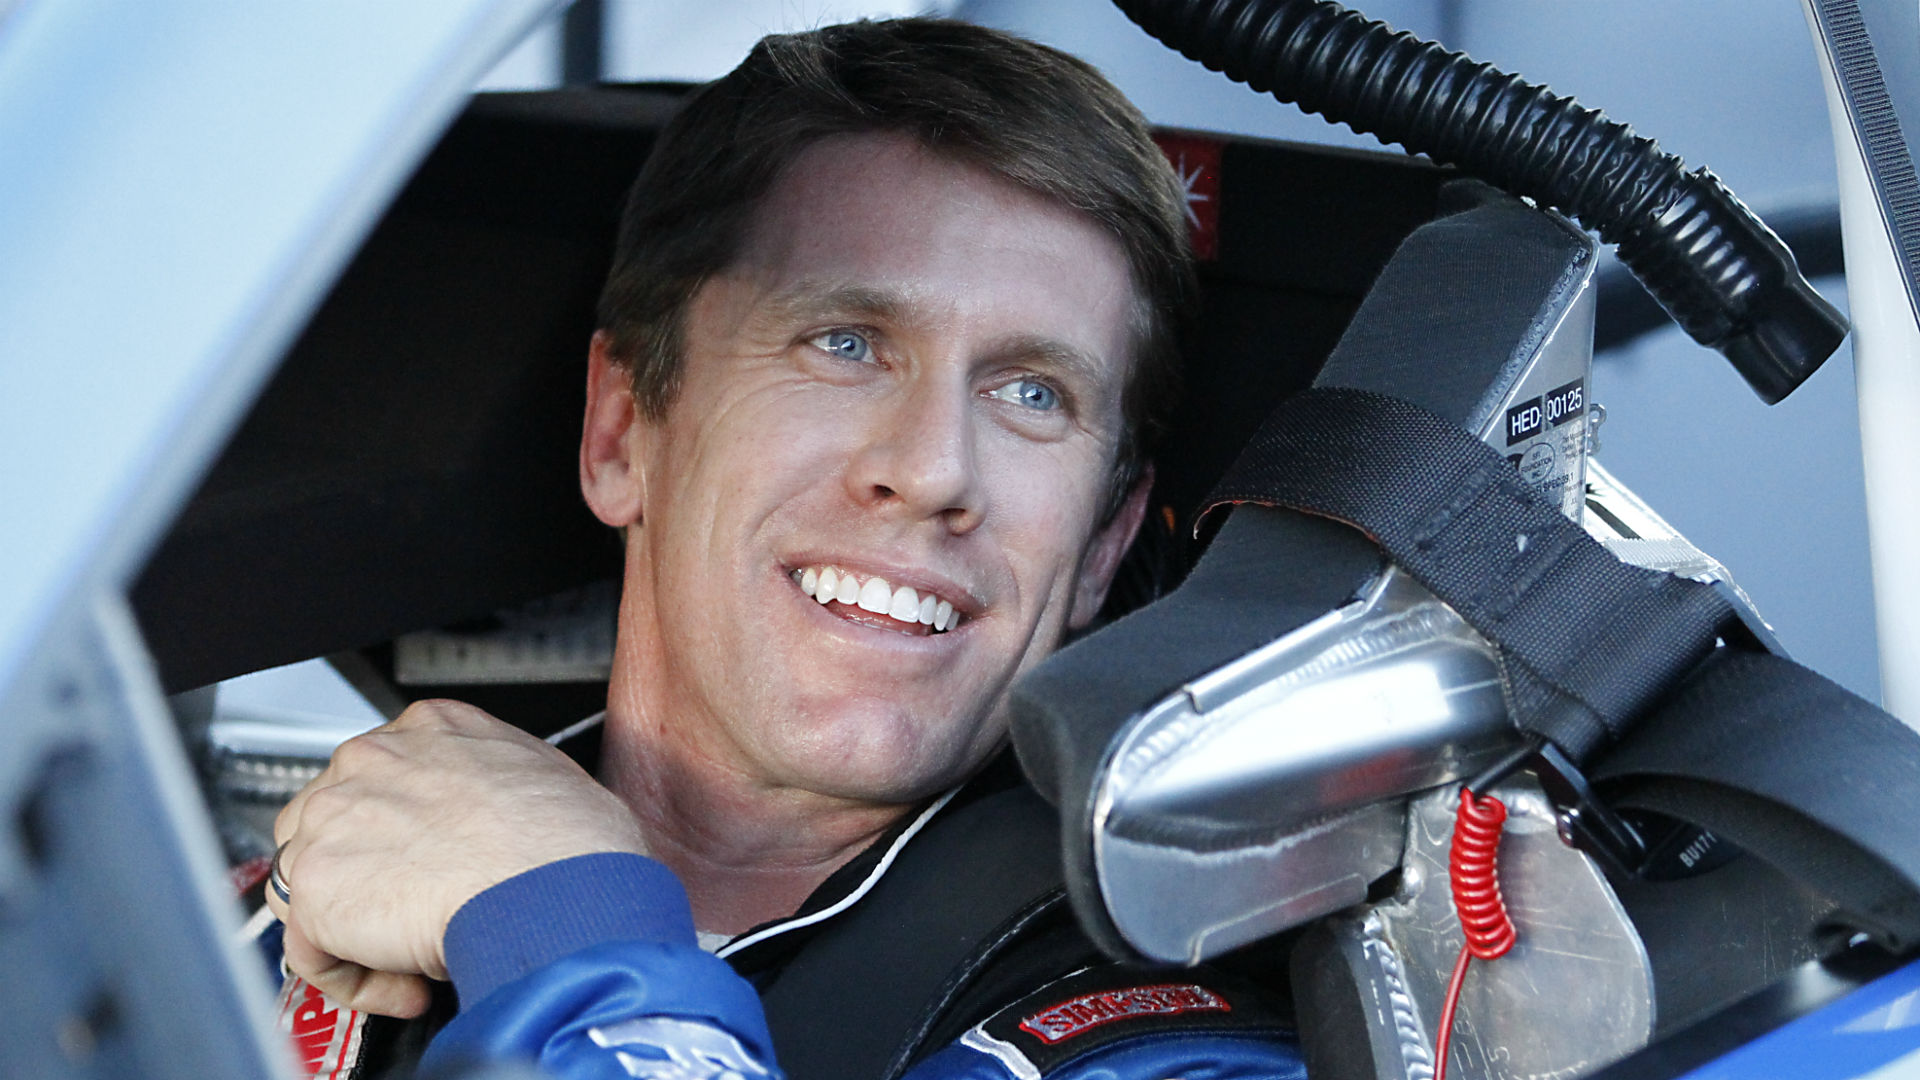 Carl Edwards-060514-AP-FTR.jpg